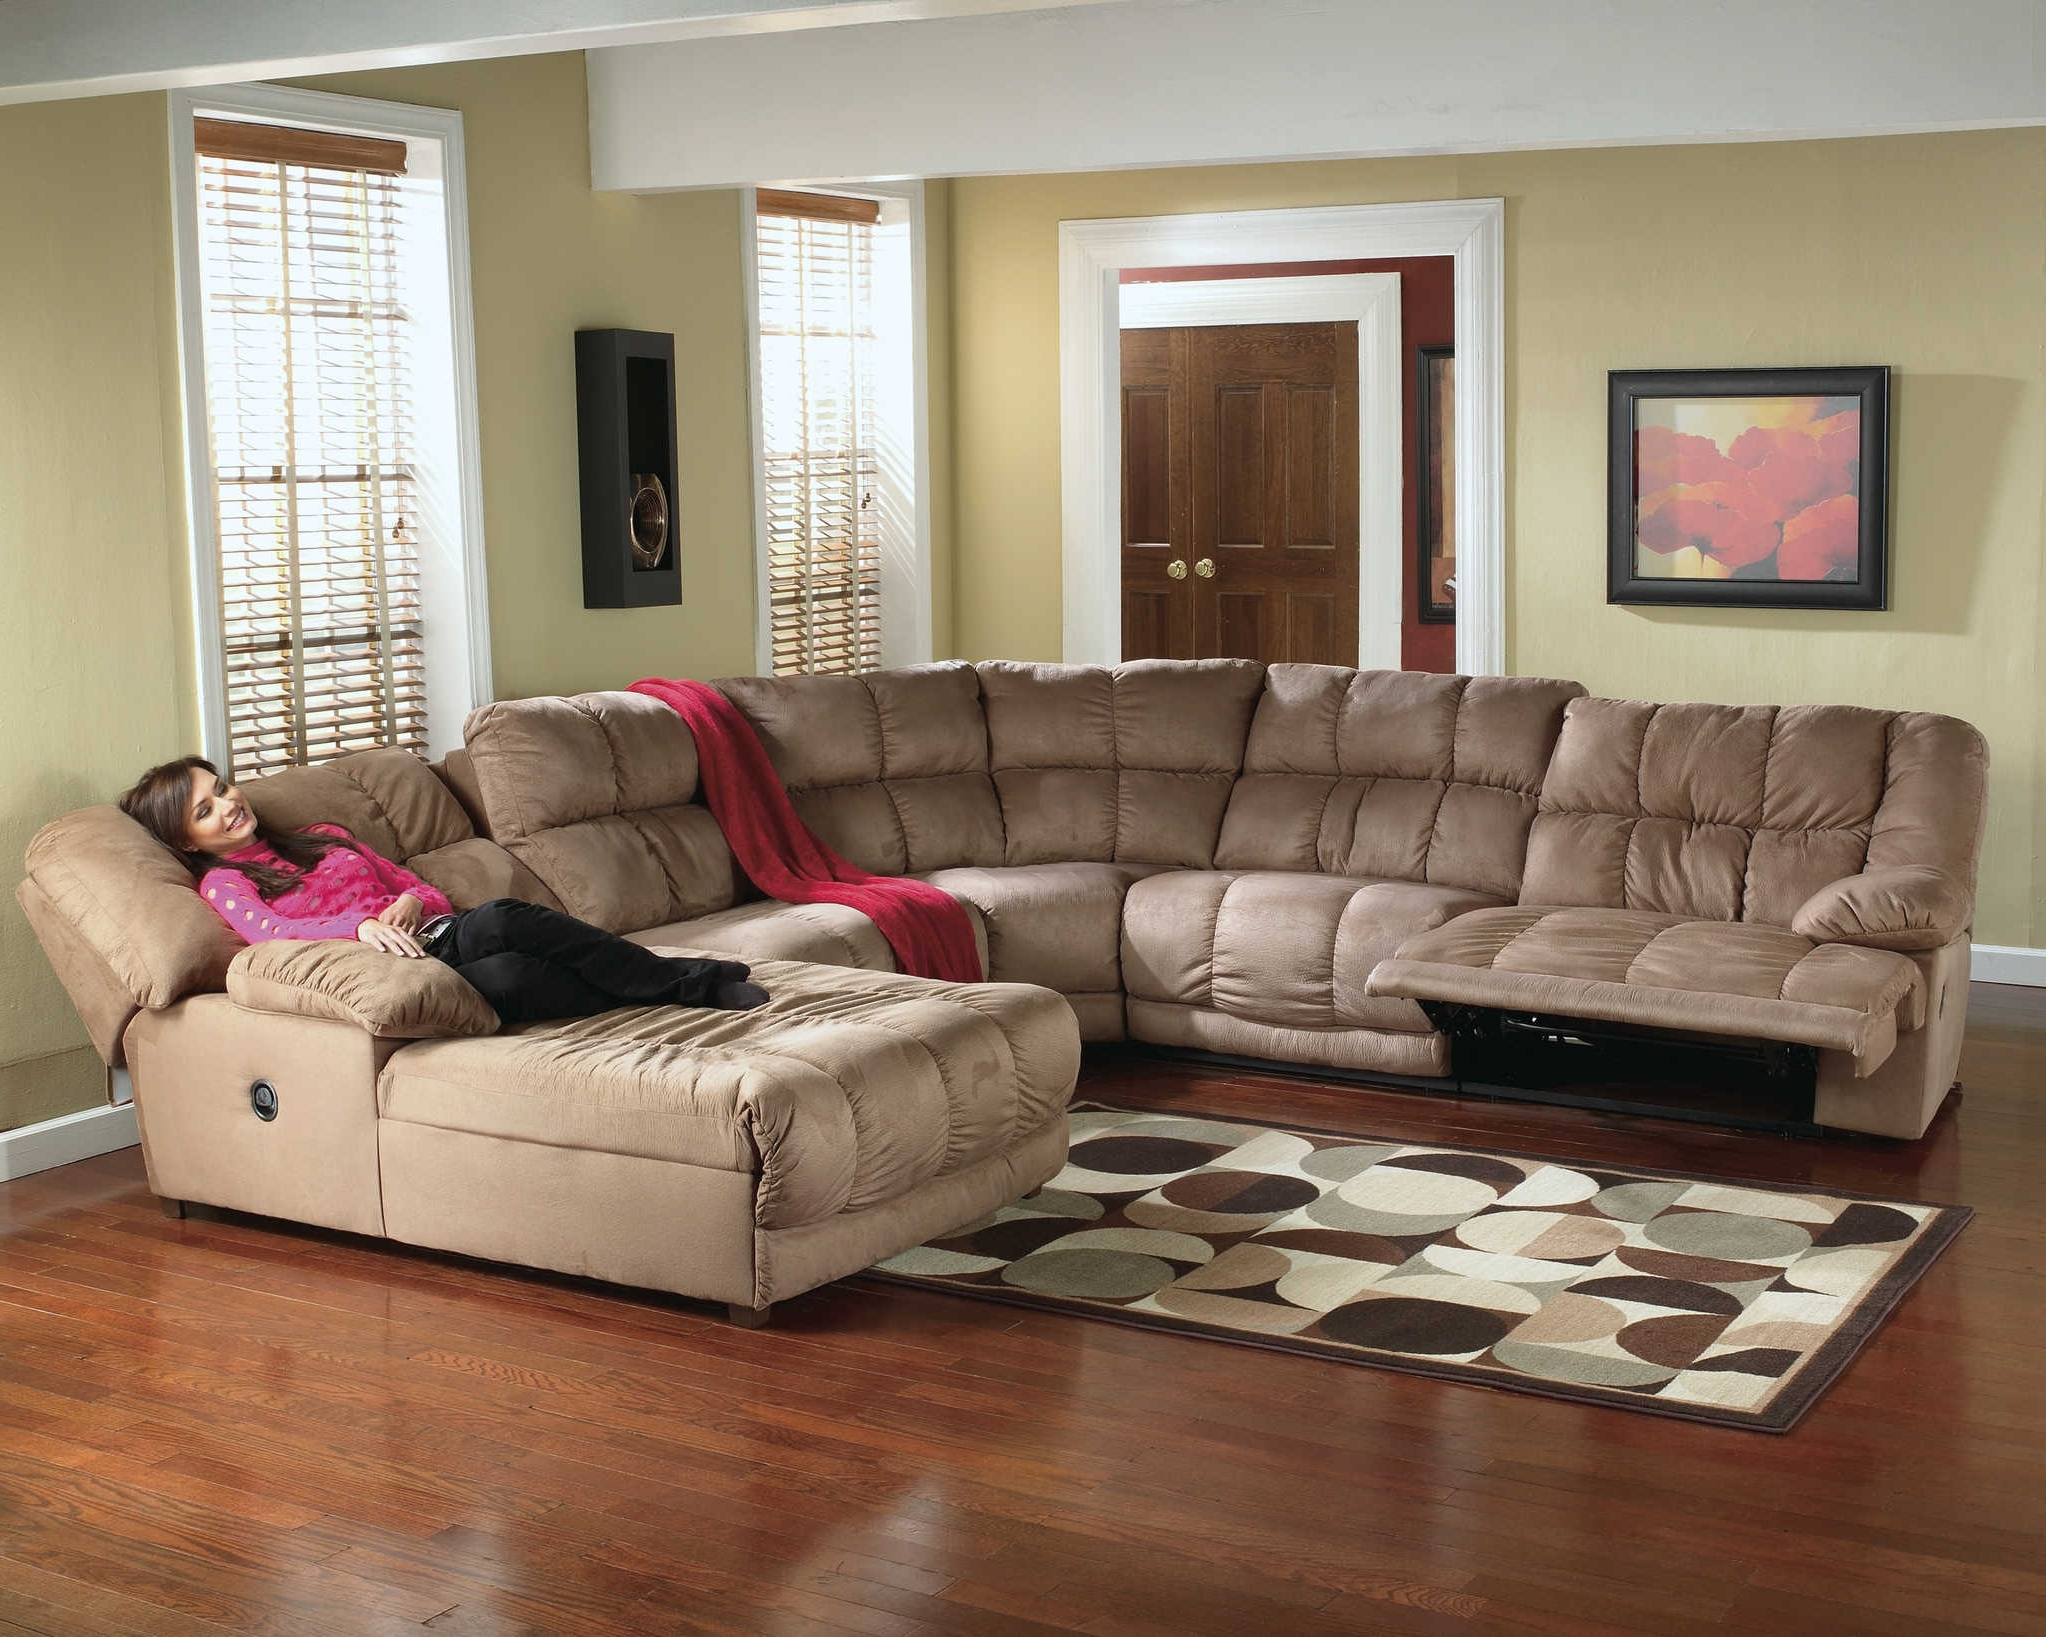 Most Up To Date Media Room Sectional Sofas – Fjellkjeden In Media Room Sectional Sofas (View 13 of 20)